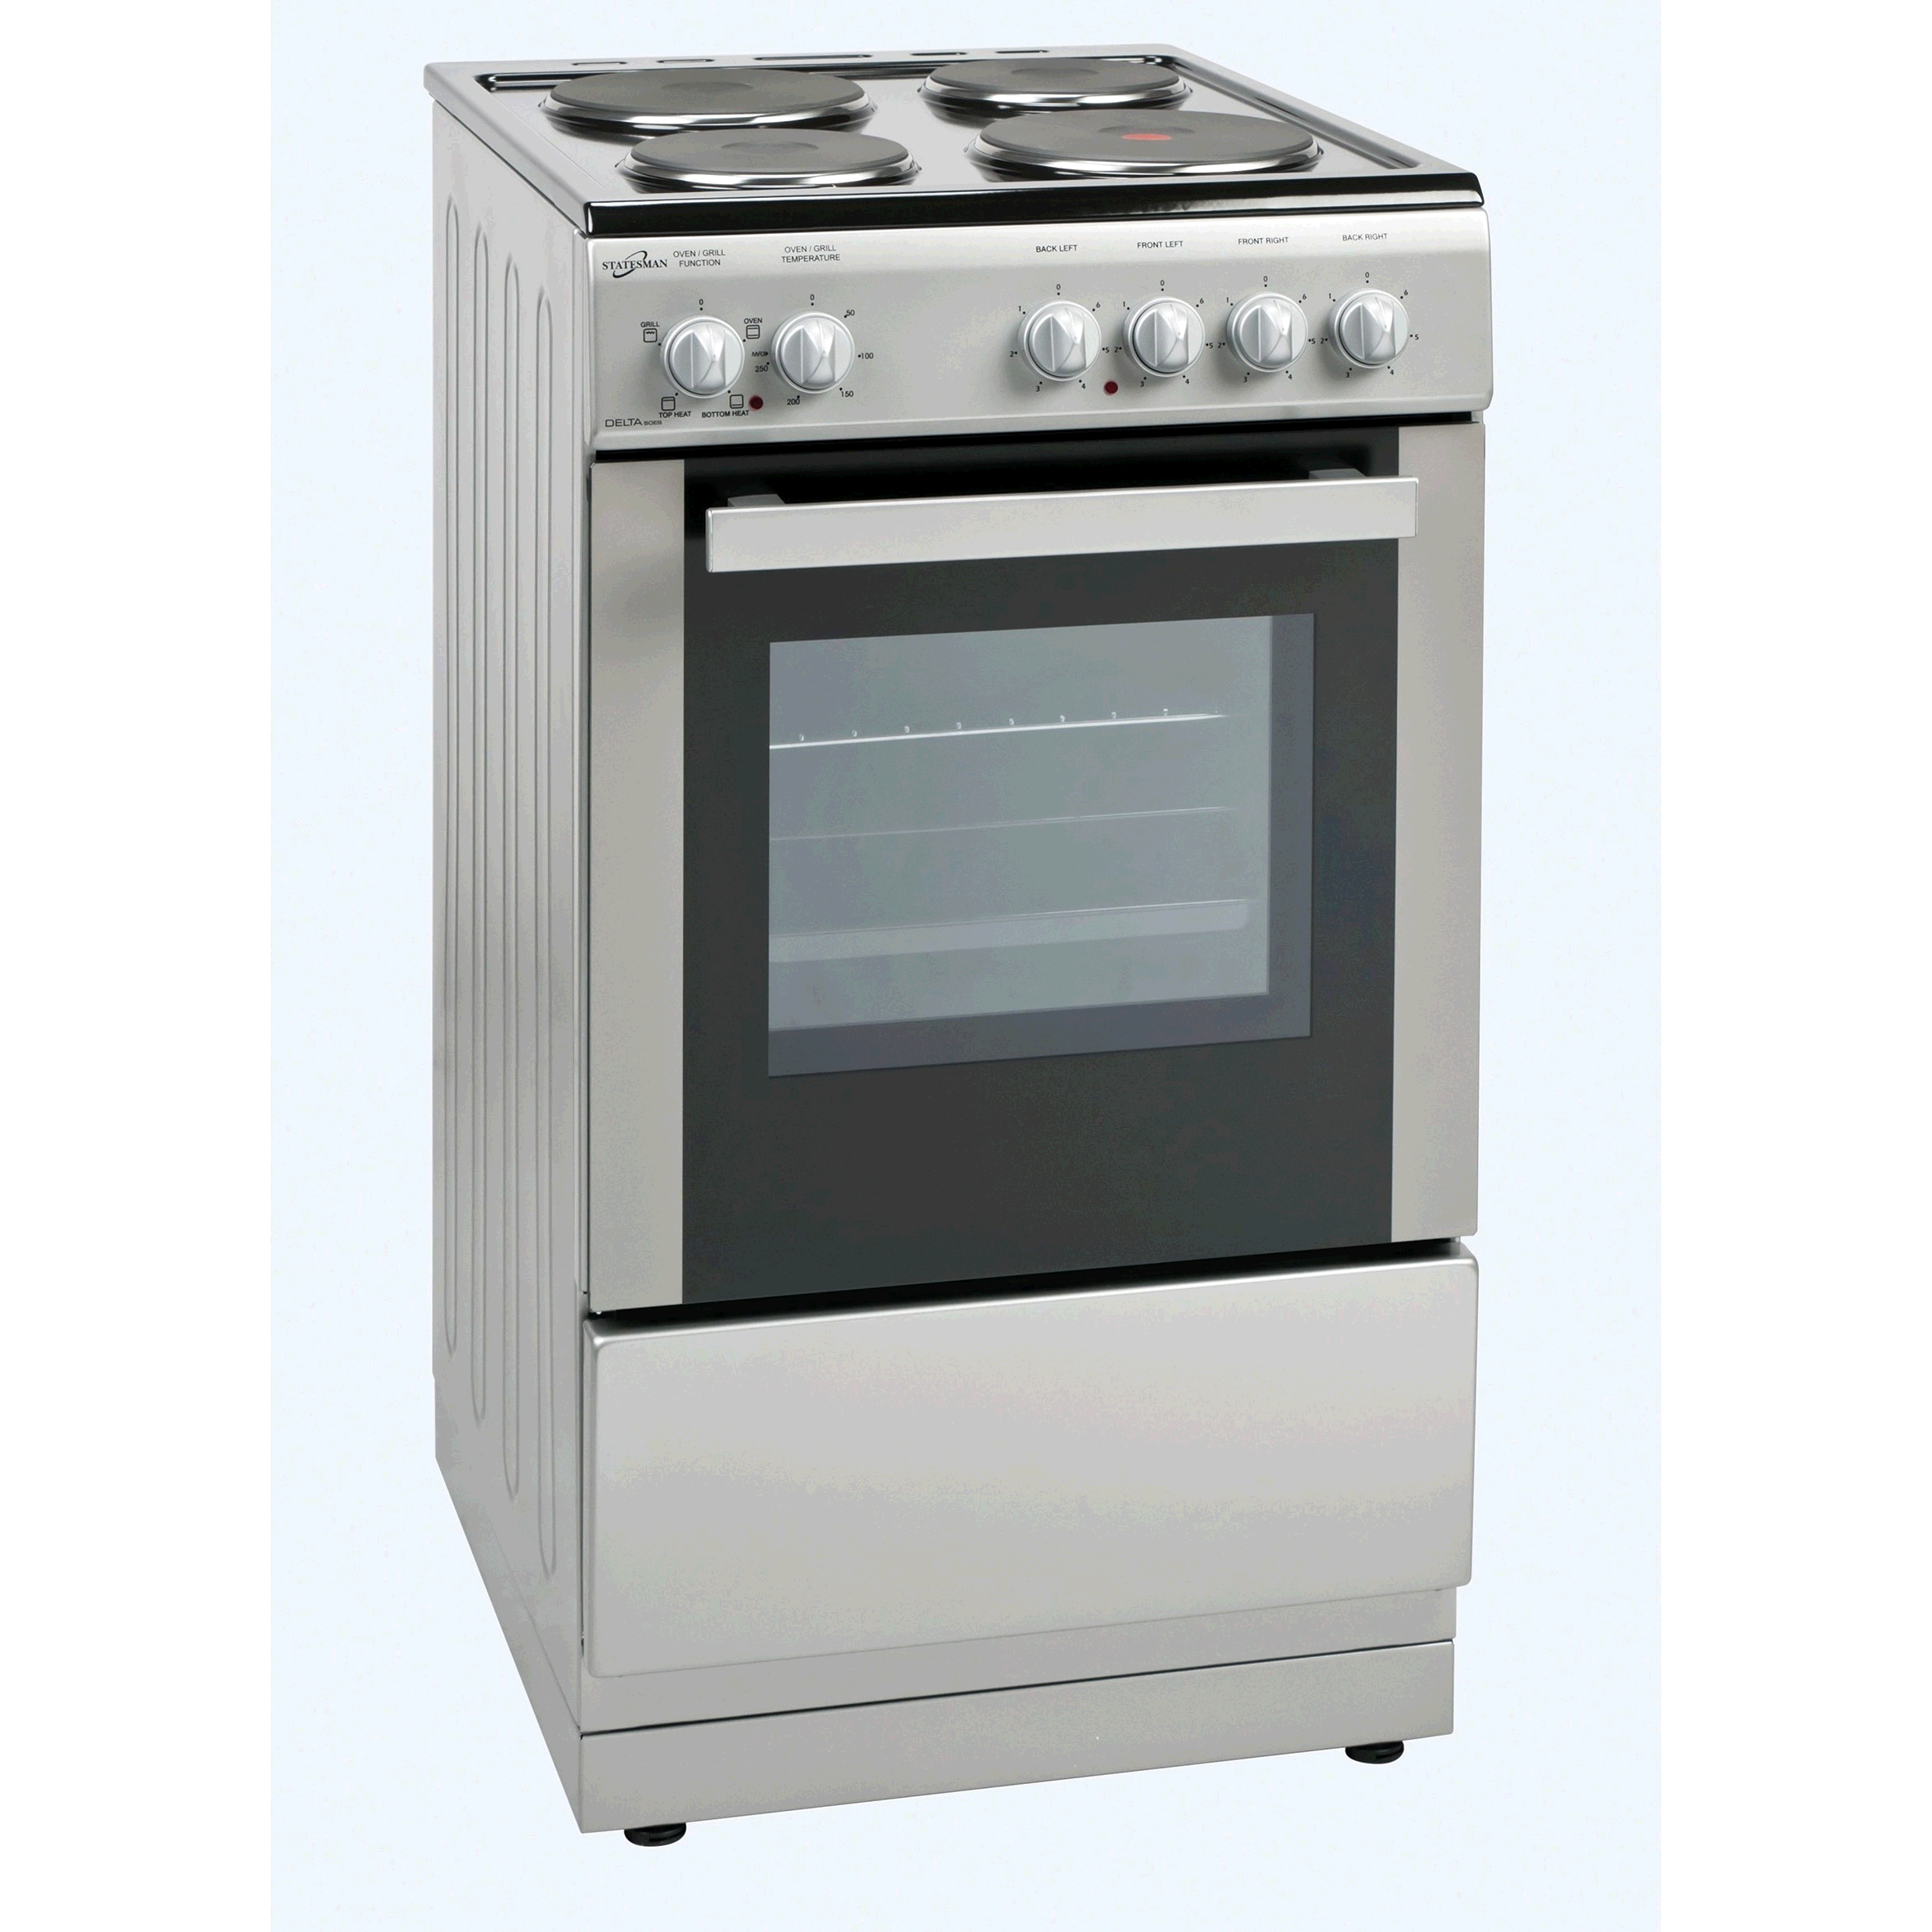 Statesman Delta 50cm Single Cavity Cooker Solid Plates in Silver